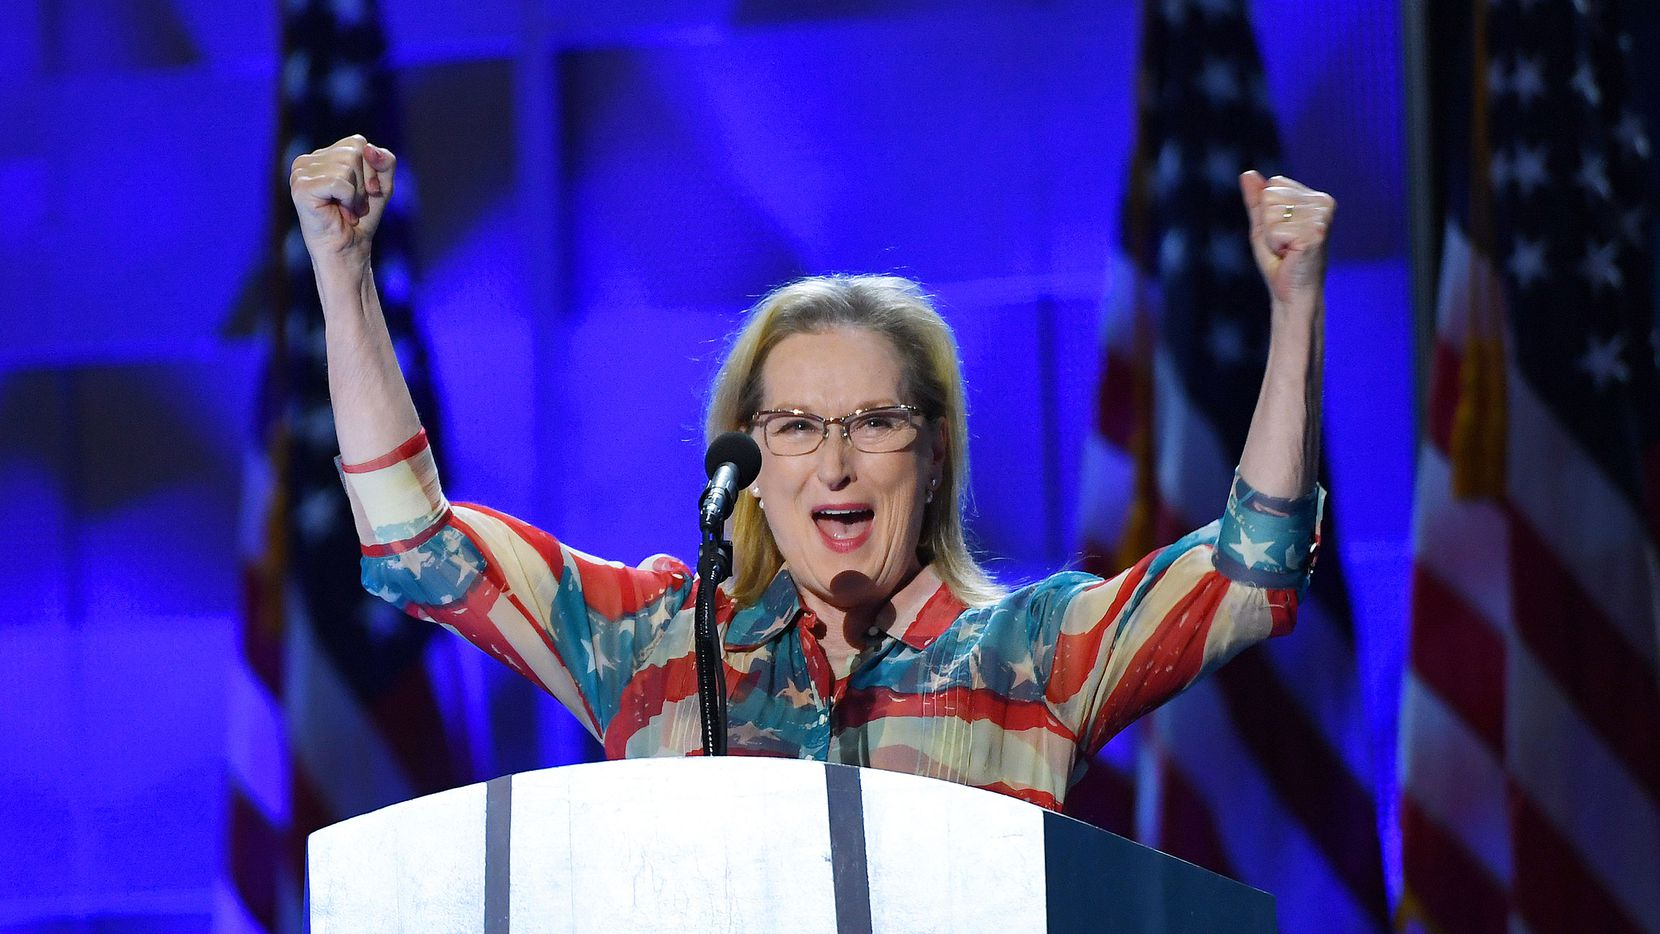 Meryl Streep speaks during the second day of the Democratic National Convention.